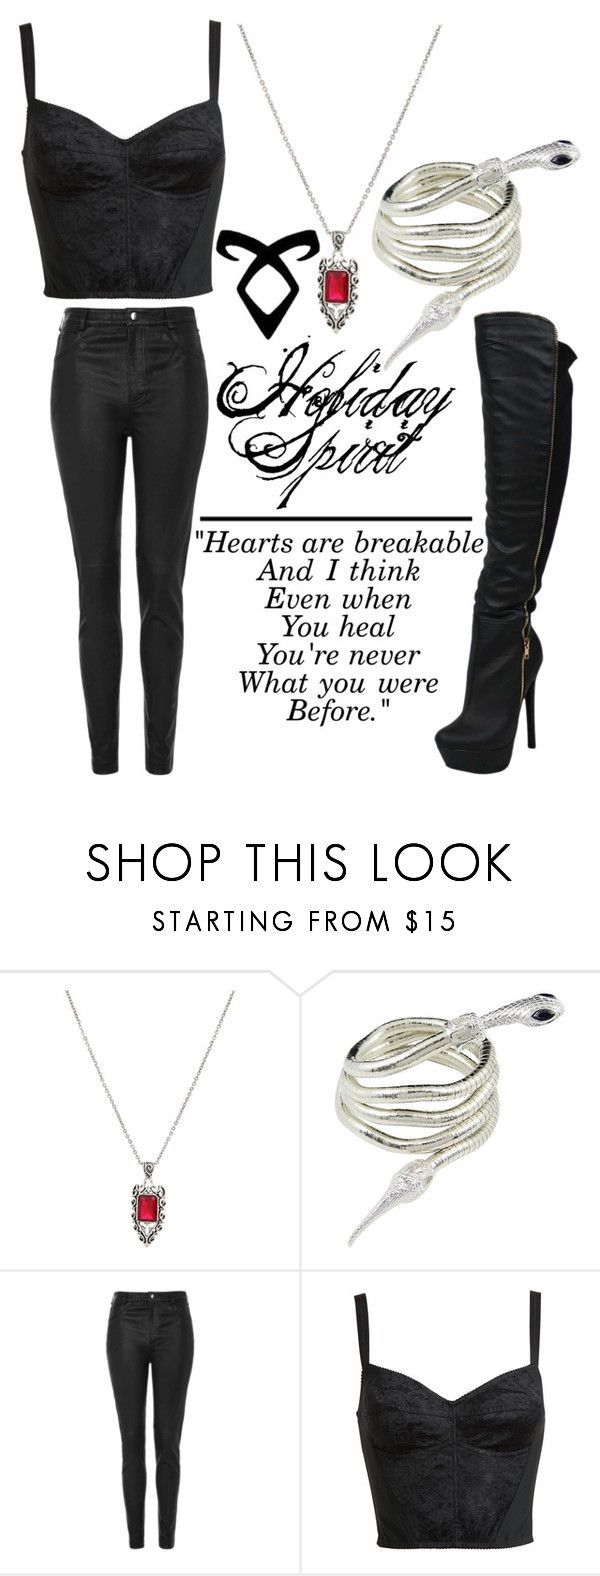 """""""Isabelle Lightwood Inspired Outfit"""" by maryanarivera ❤ liked on Polyvore featuring Topshop and Dolce&Gabbana"""